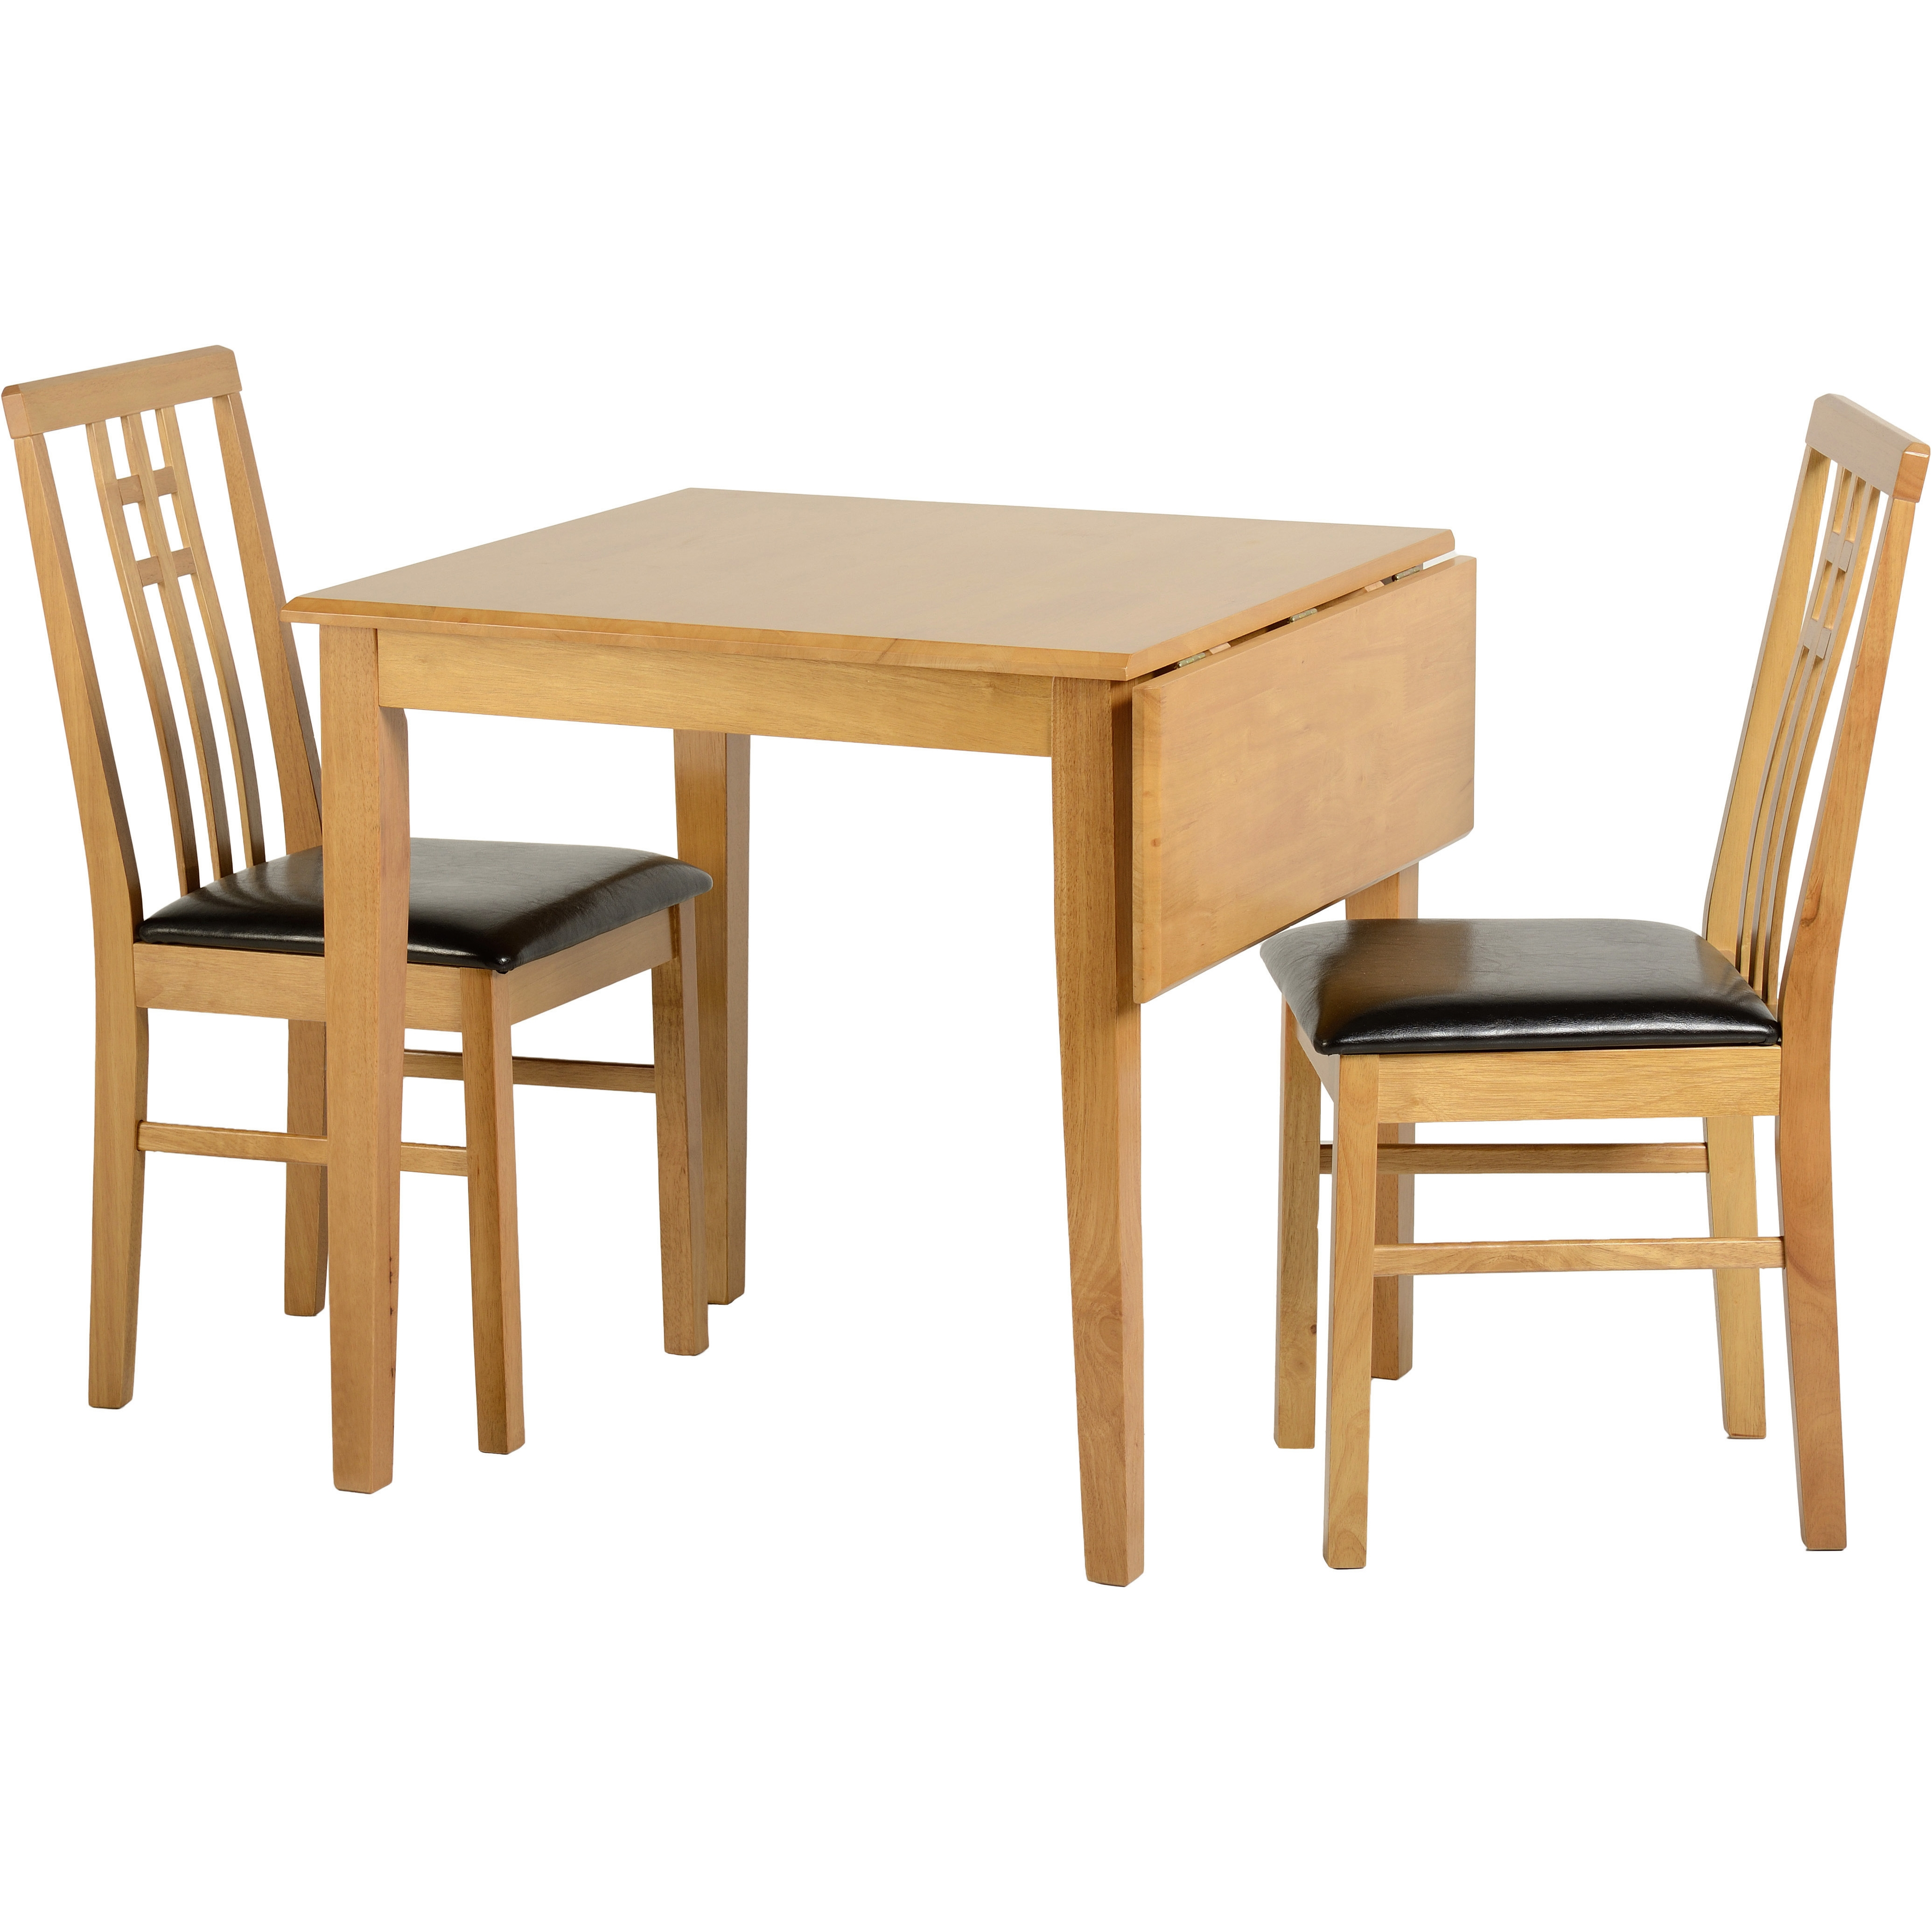 Home and Haus Extendable Dining Table and 2 Chairs SEQ1364